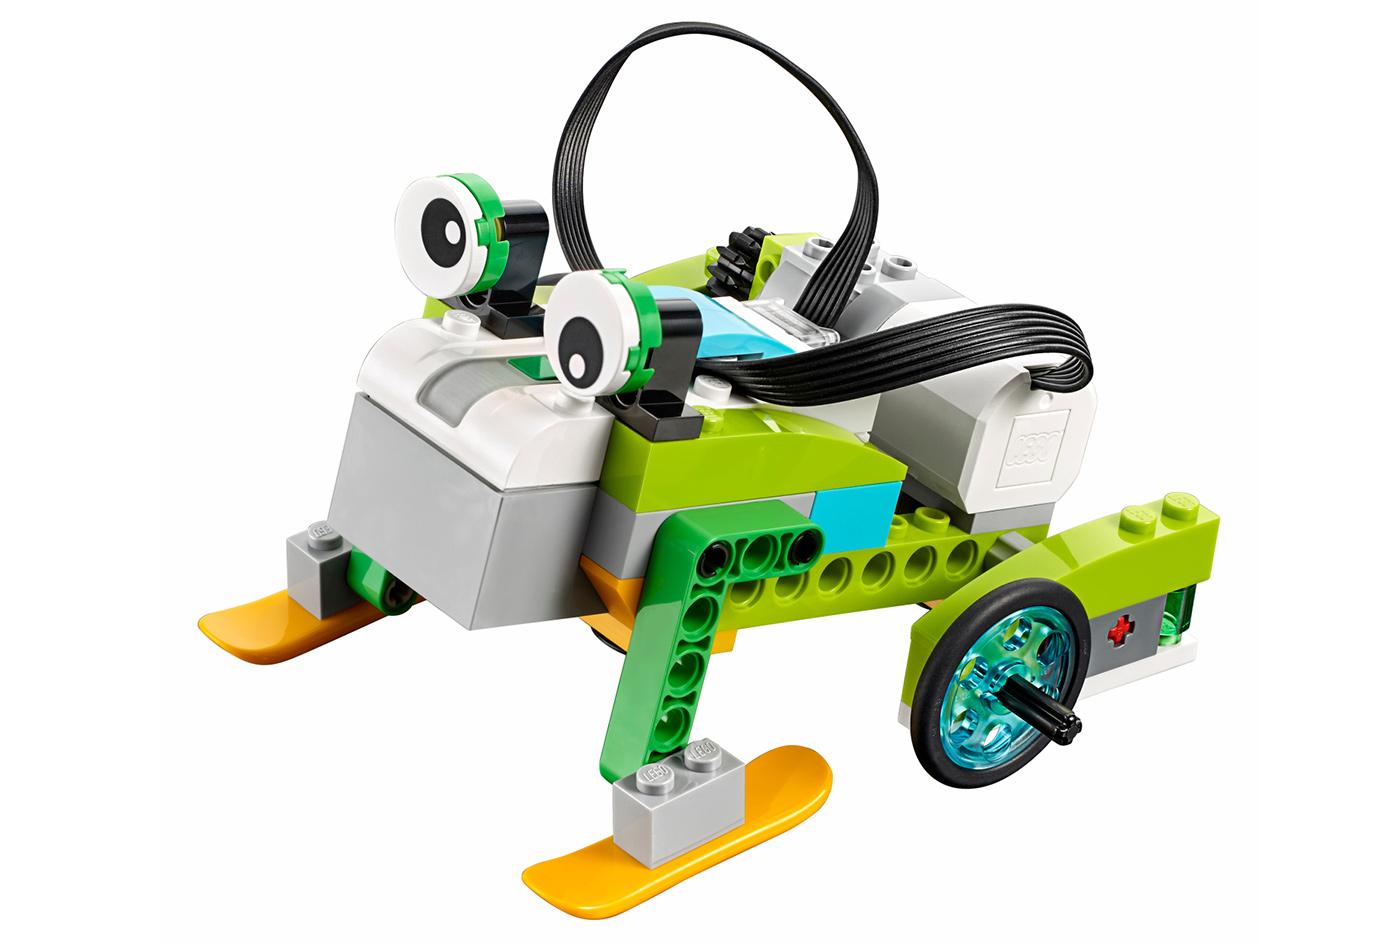 Lego S Wedo 2 0 Gives Kids A Crash Course In Robotics Open Electronics